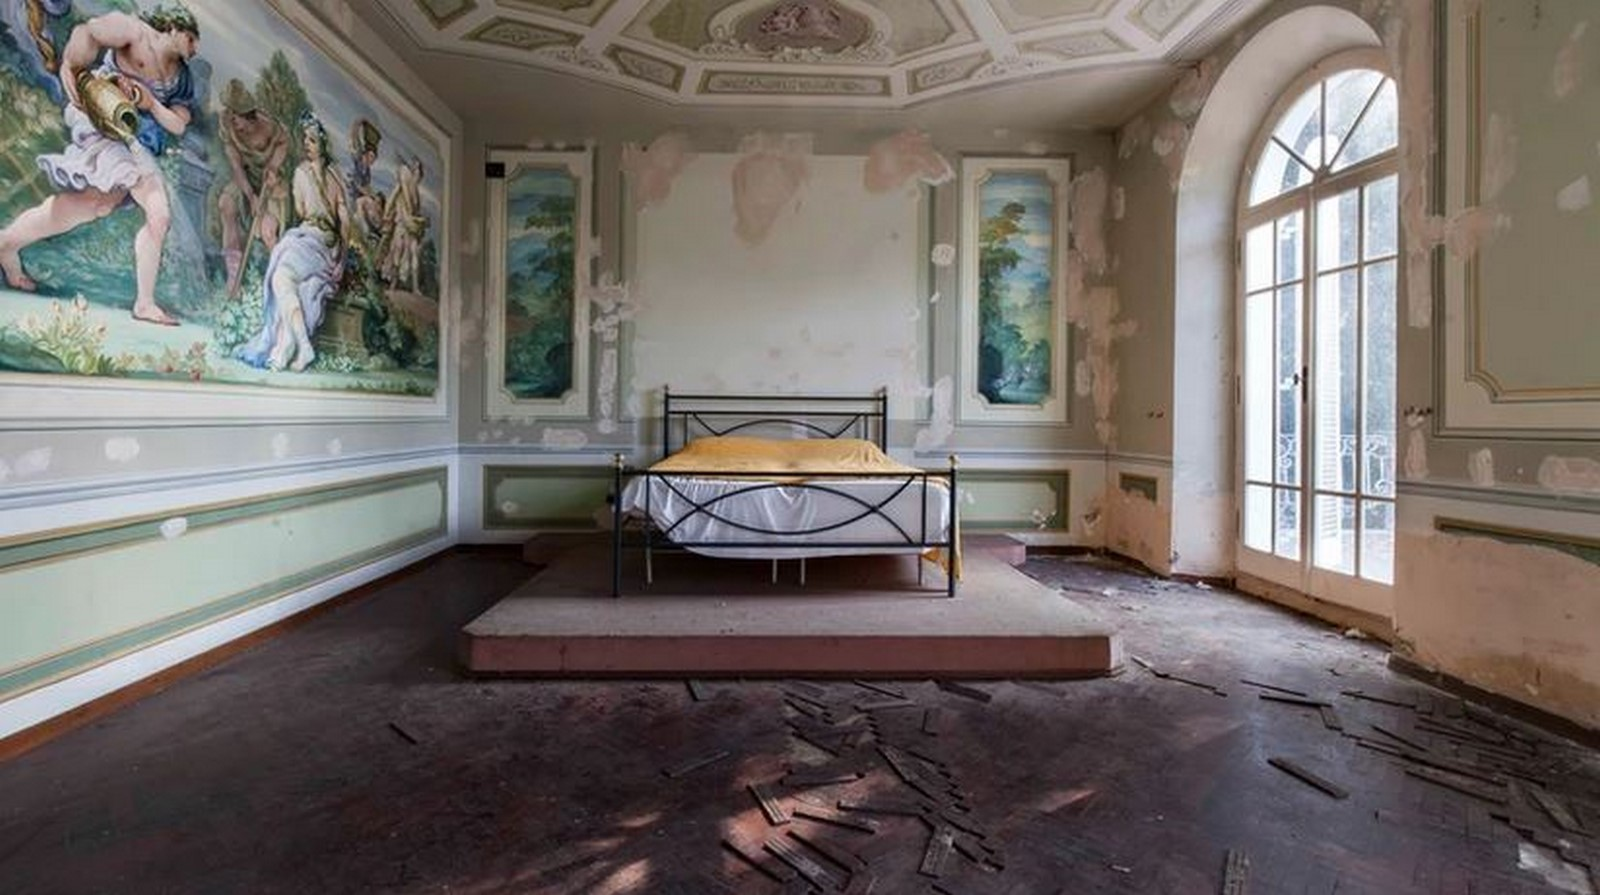 Abandoned places scattered through Italy, E. Costi - Sheet1